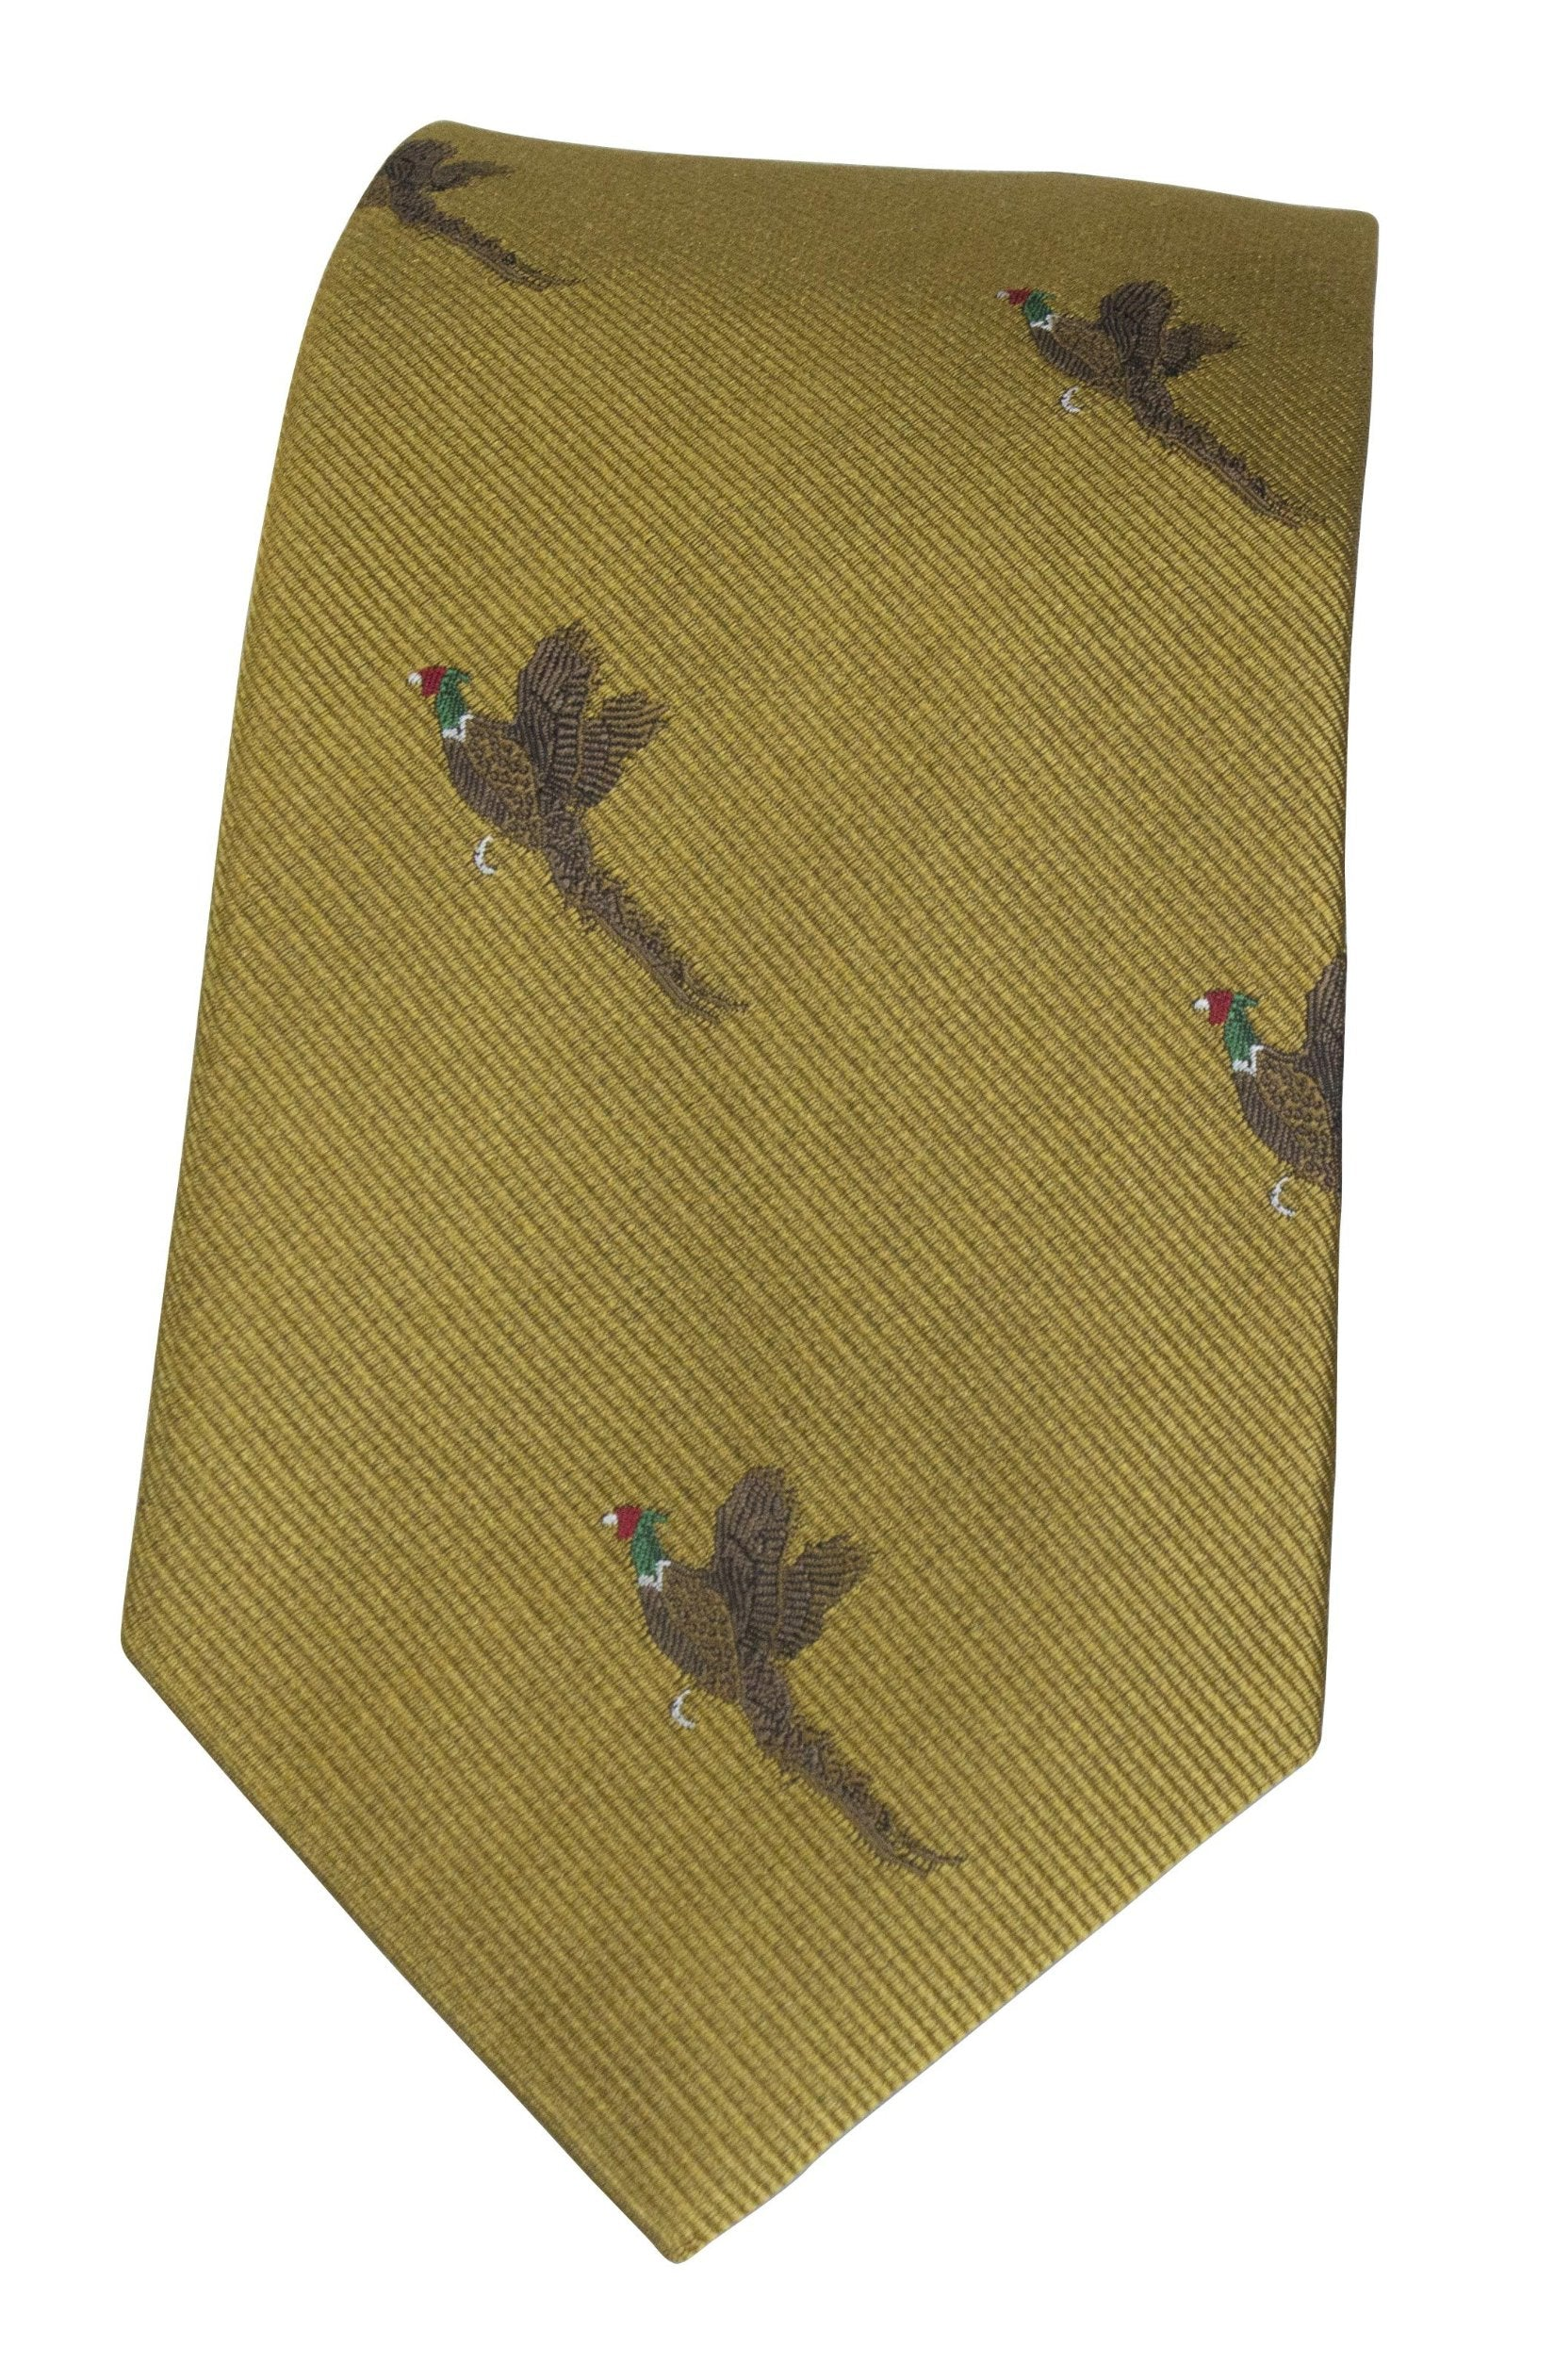 GT9 - 100% Silk Woven Tie - Pheasant - GOLD - Oxford Blue